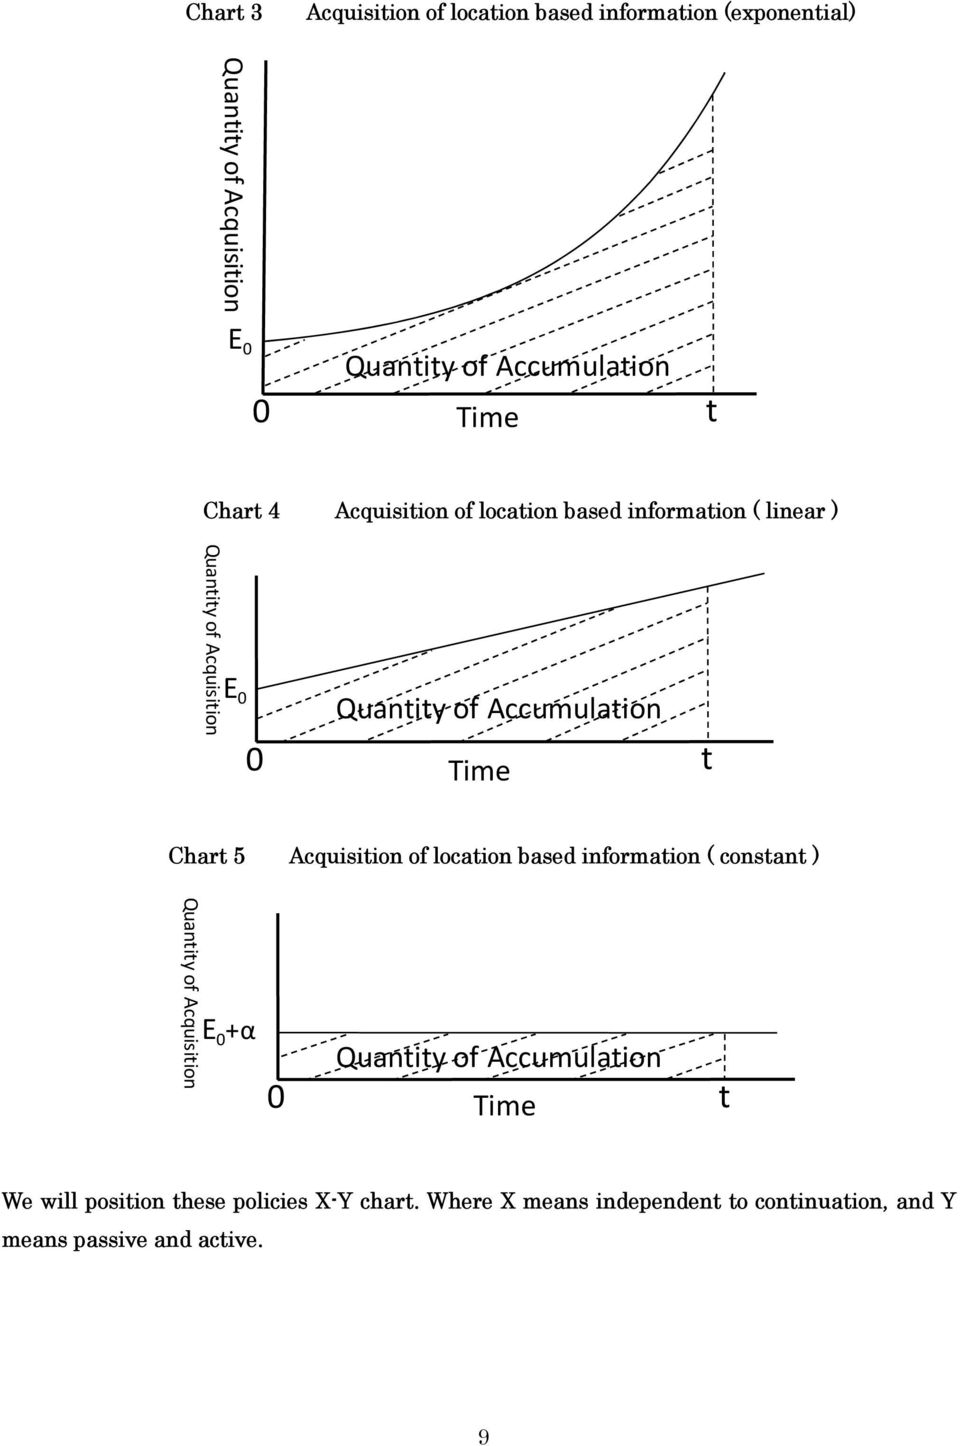 t Chart 5 Acquisition of location based information ( constant ) Quantity of Acquisition E 0 +α 0 Quantity of Accumulation